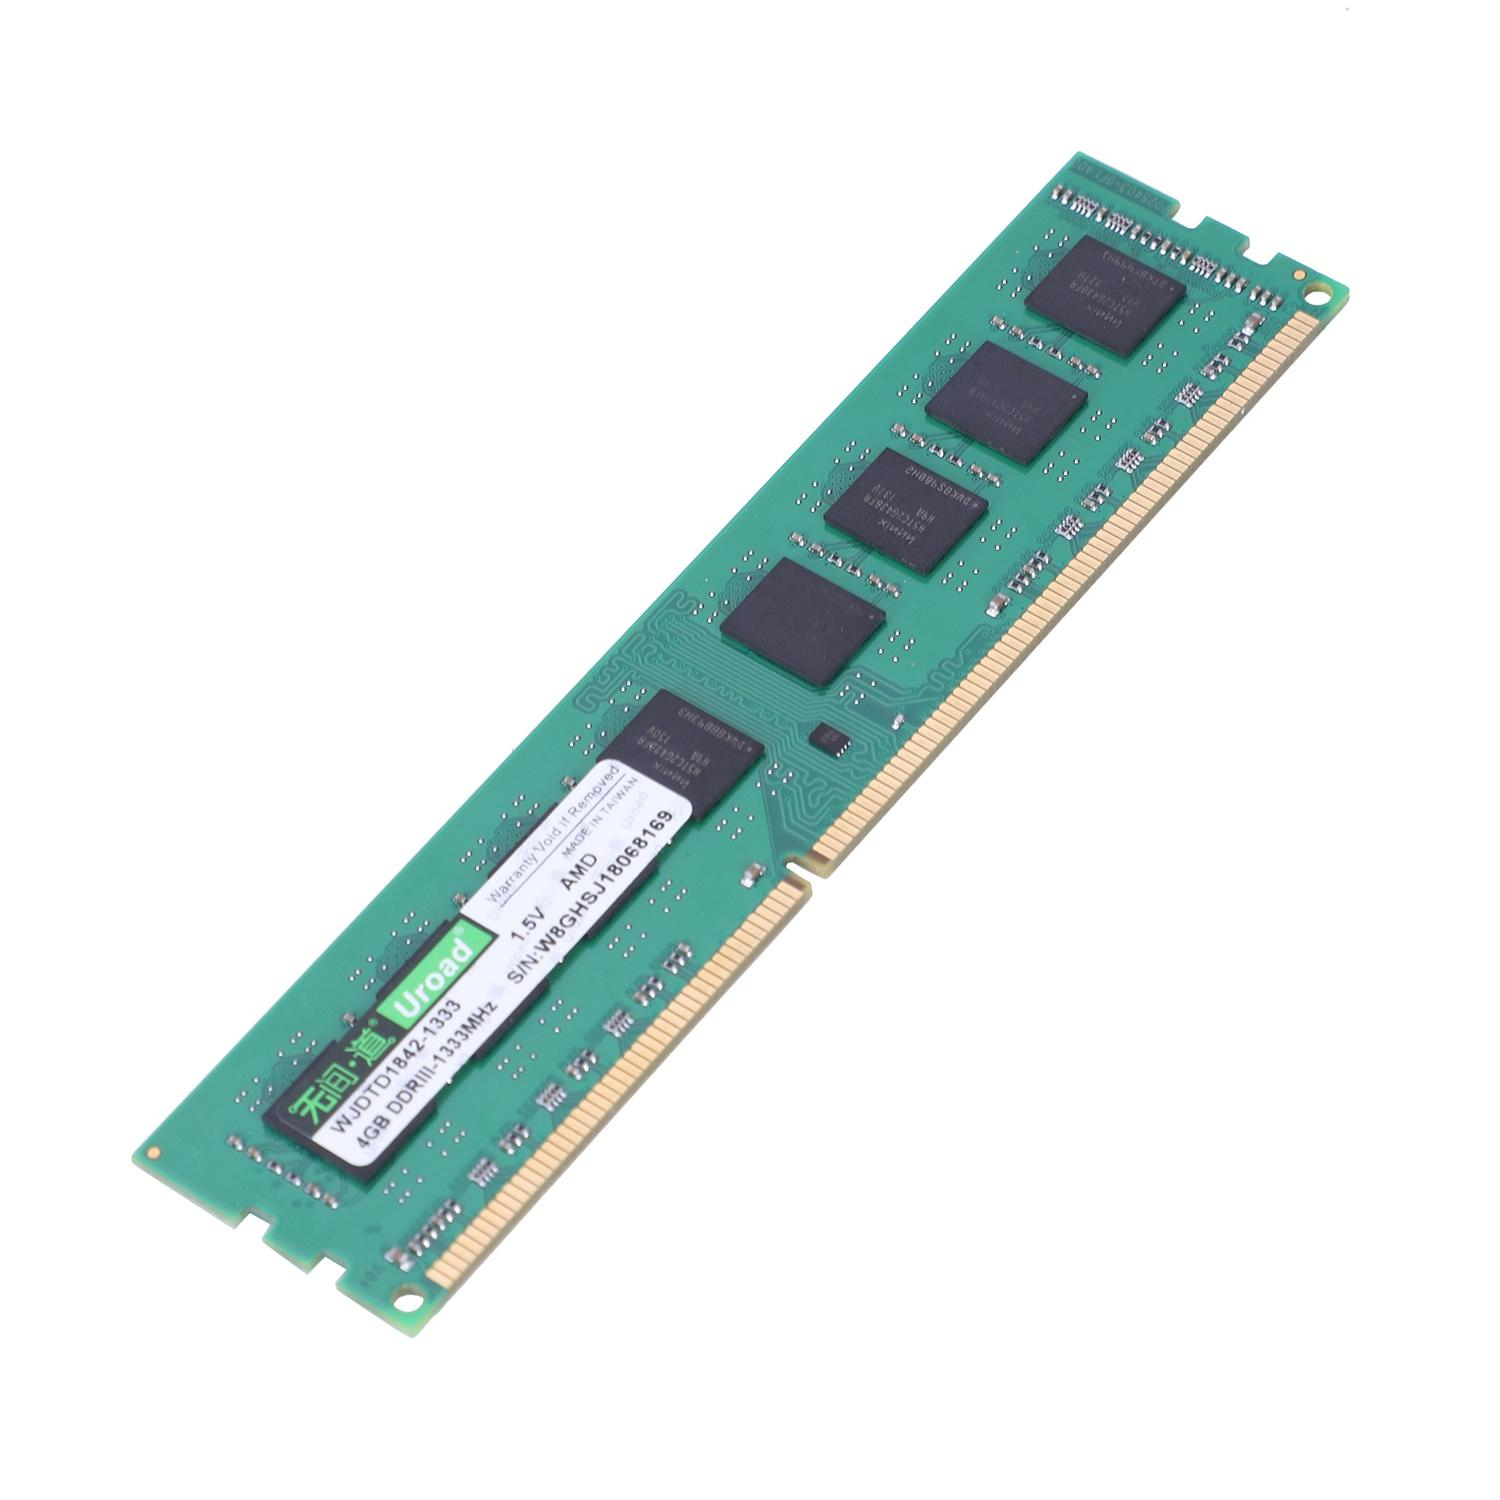 Uroad 4gb Ddr3 Ddr3i 1600mhz Ram Desktop Memory Dimm Only For Amd Computer Pc(4gb) By Jwerlyday.